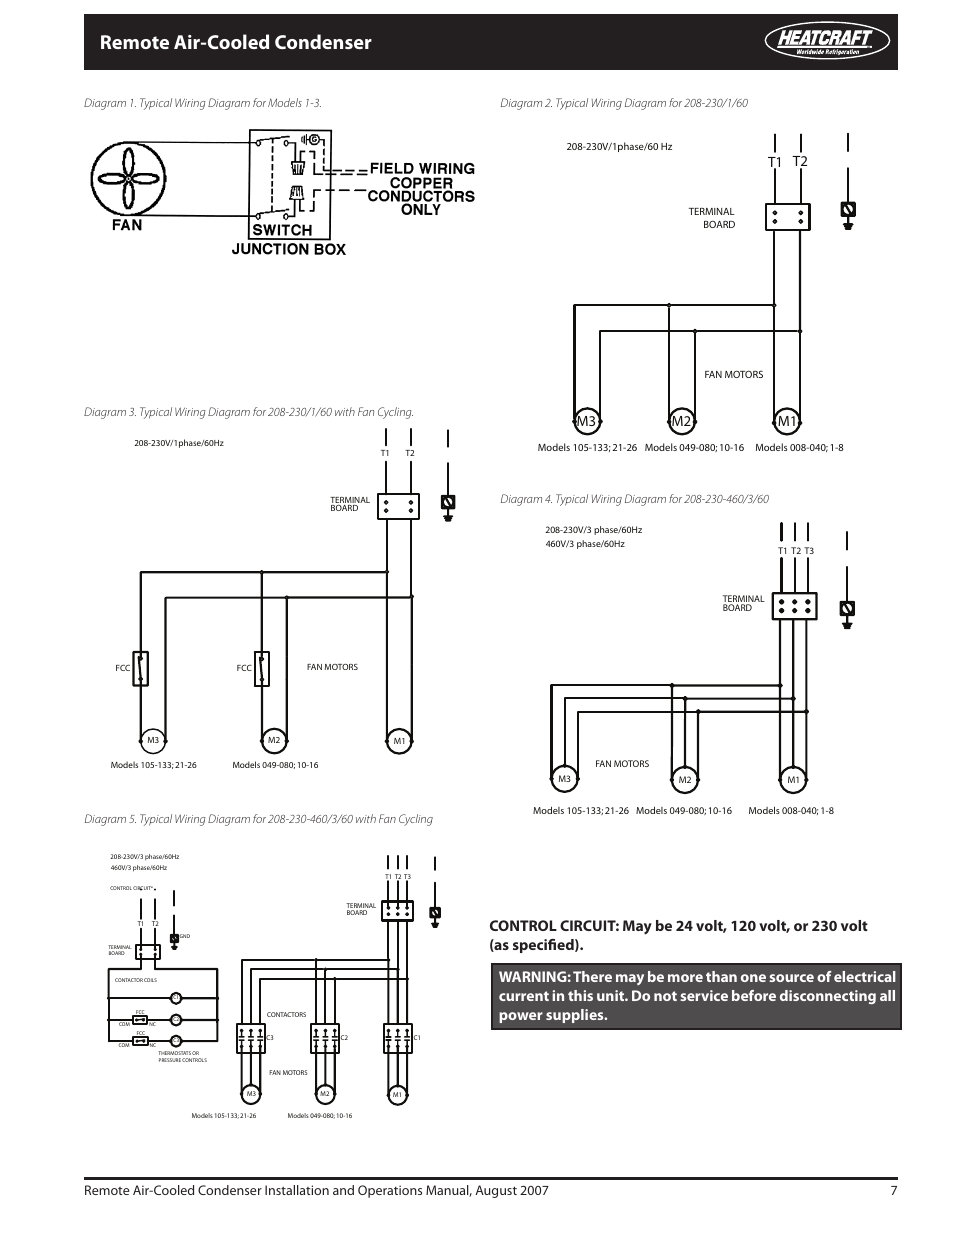 remote air cooled condenser, t1 m1 m2 m3 heatcraft refrigeration Telecaster Wiring-Diagram